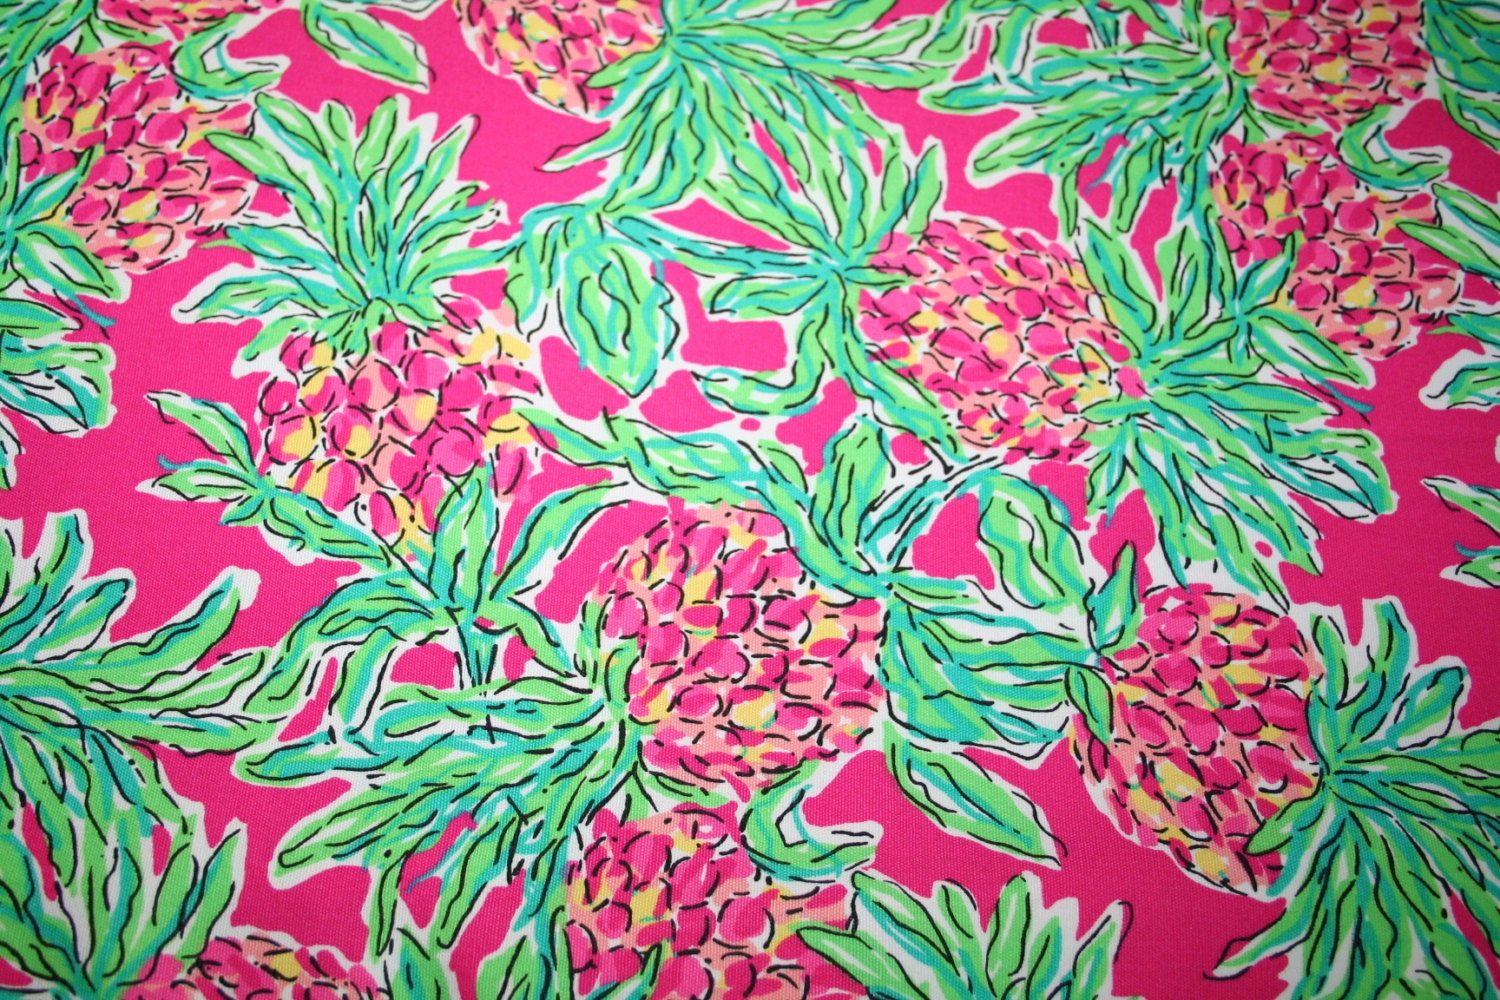 Lilly Pulitzer Fabric Lilly Pulitzer Fabric Orchid Pink Spike The Punch